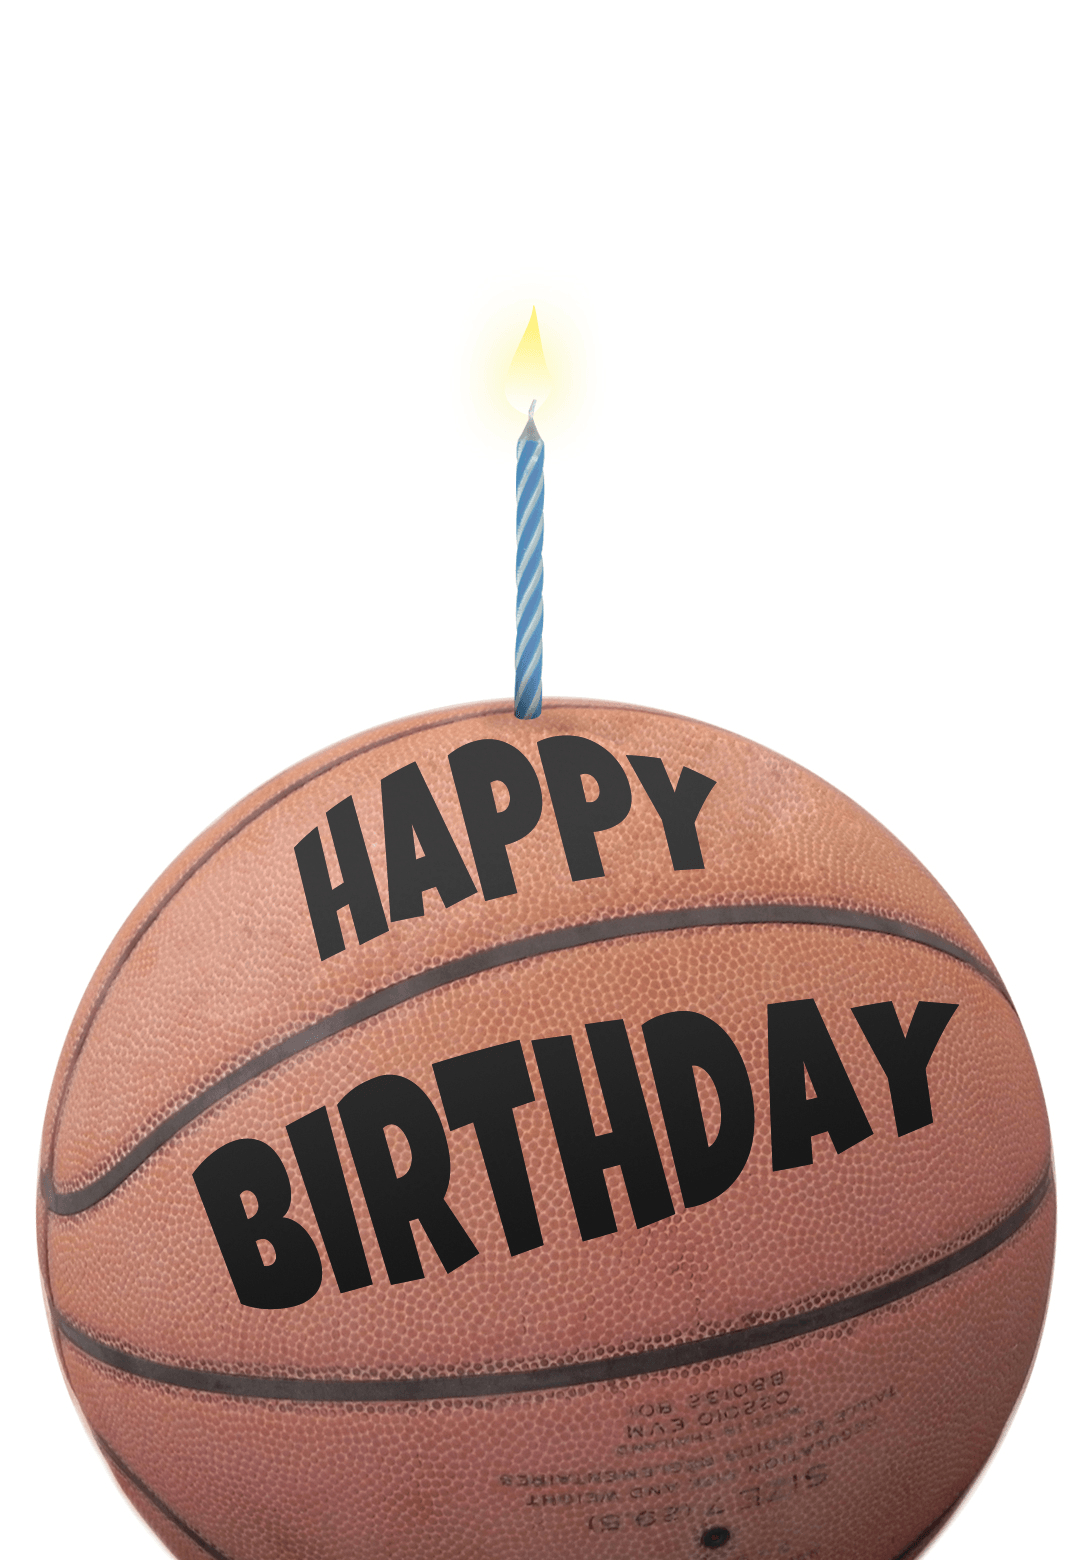 Free Printable Birthday Card - Basketball | Greetings Island - Sports Birthday Cards Free Printable